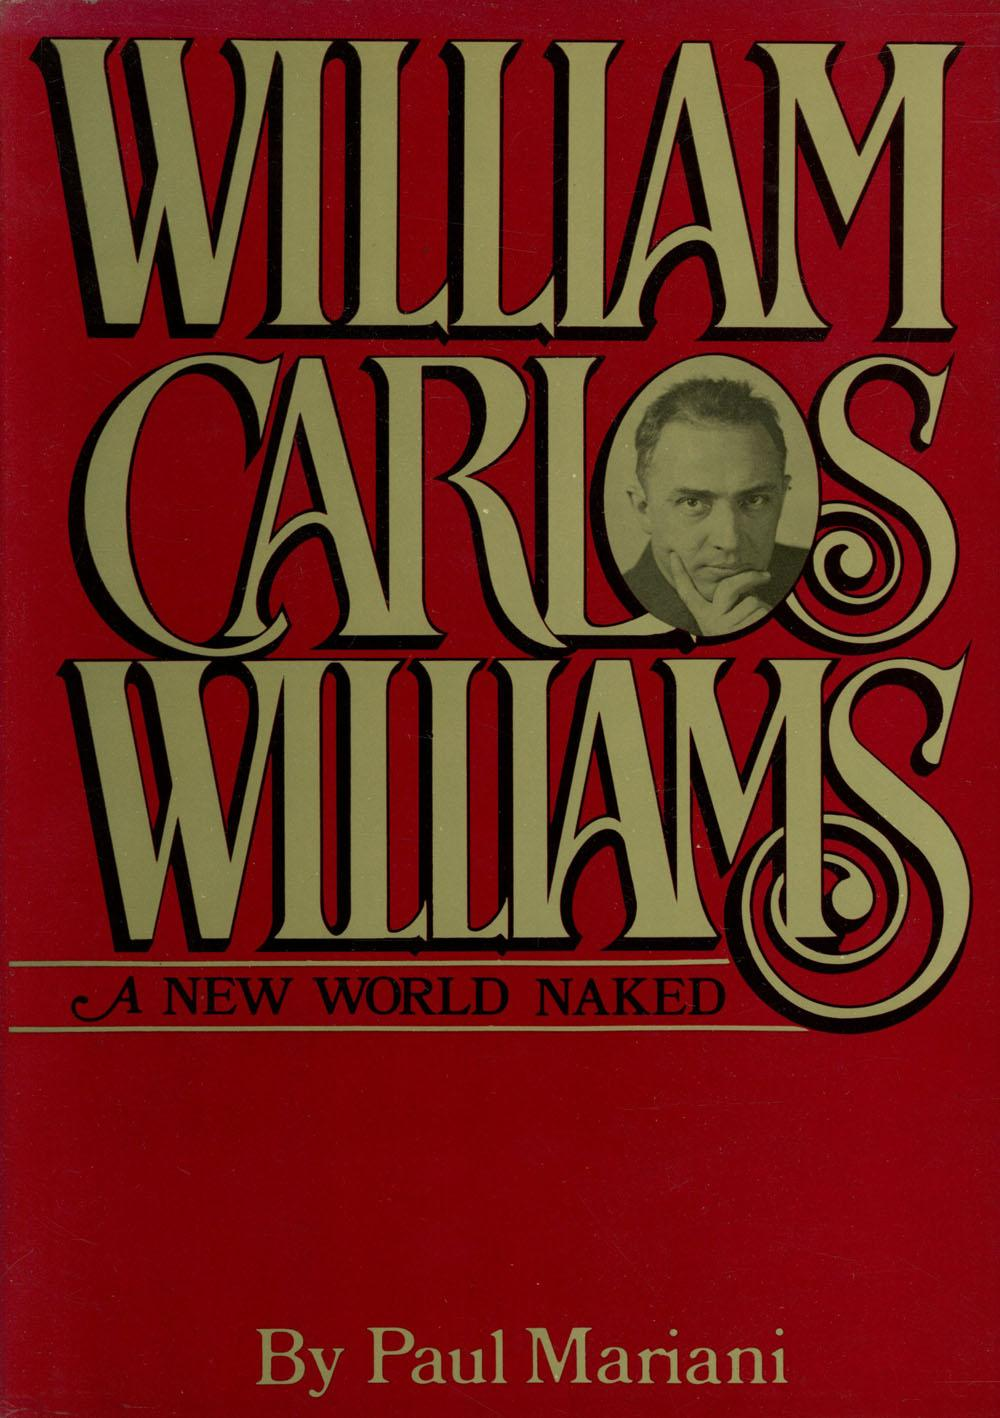 cover of William Carlos Williams A New World Naked by Paul Mariani